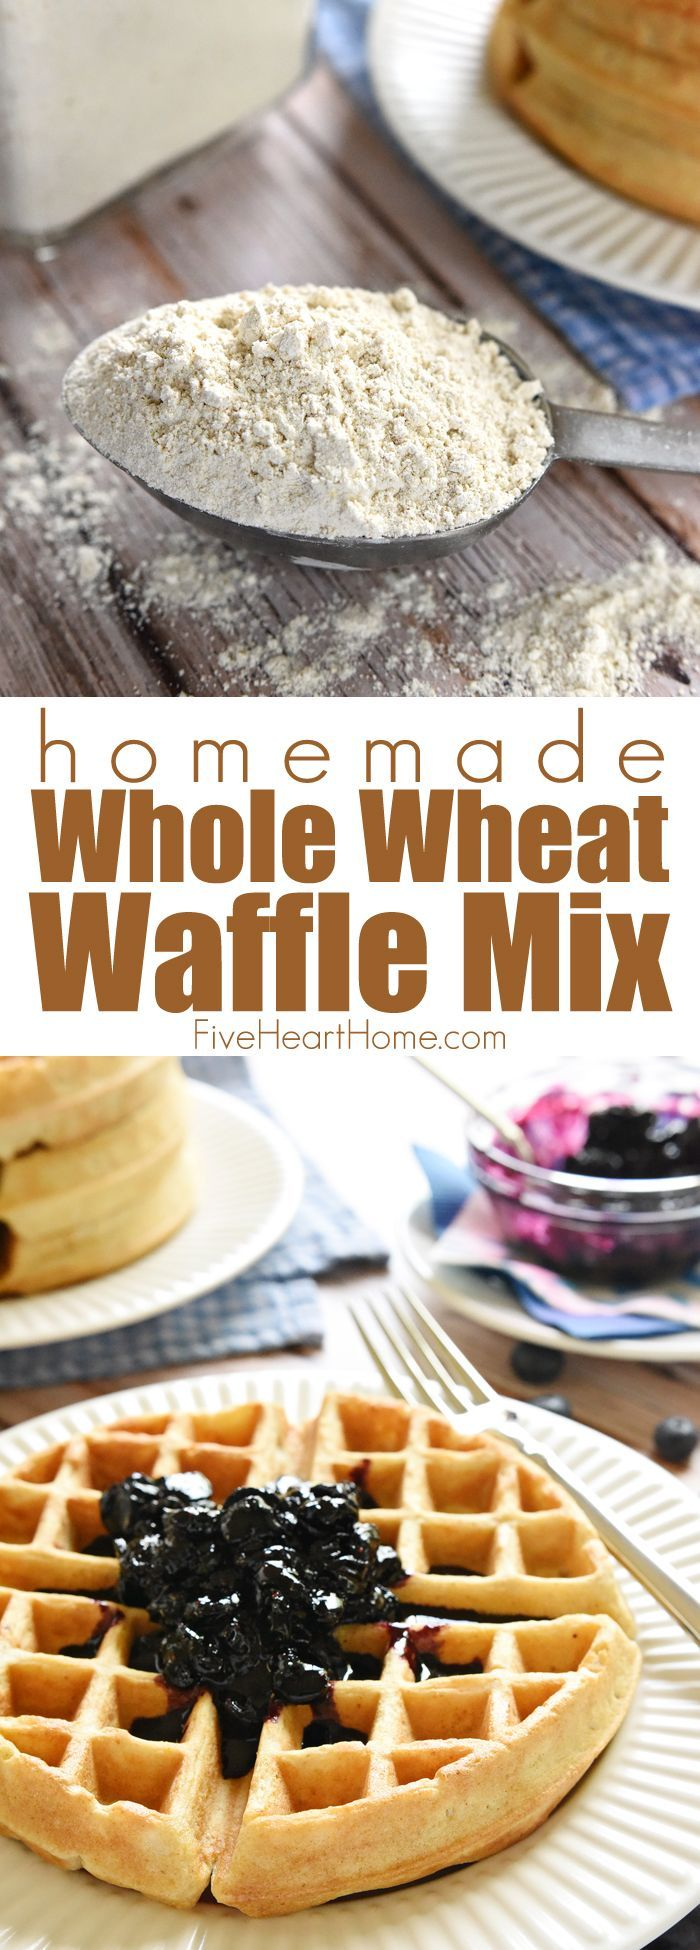 Homemade Whole Wheat Waffle Mix ~ an economical pantry staple for conveniently whipping up fluffy, all-natural, 100% whole wheat waffles! | FiveHeartHome.com